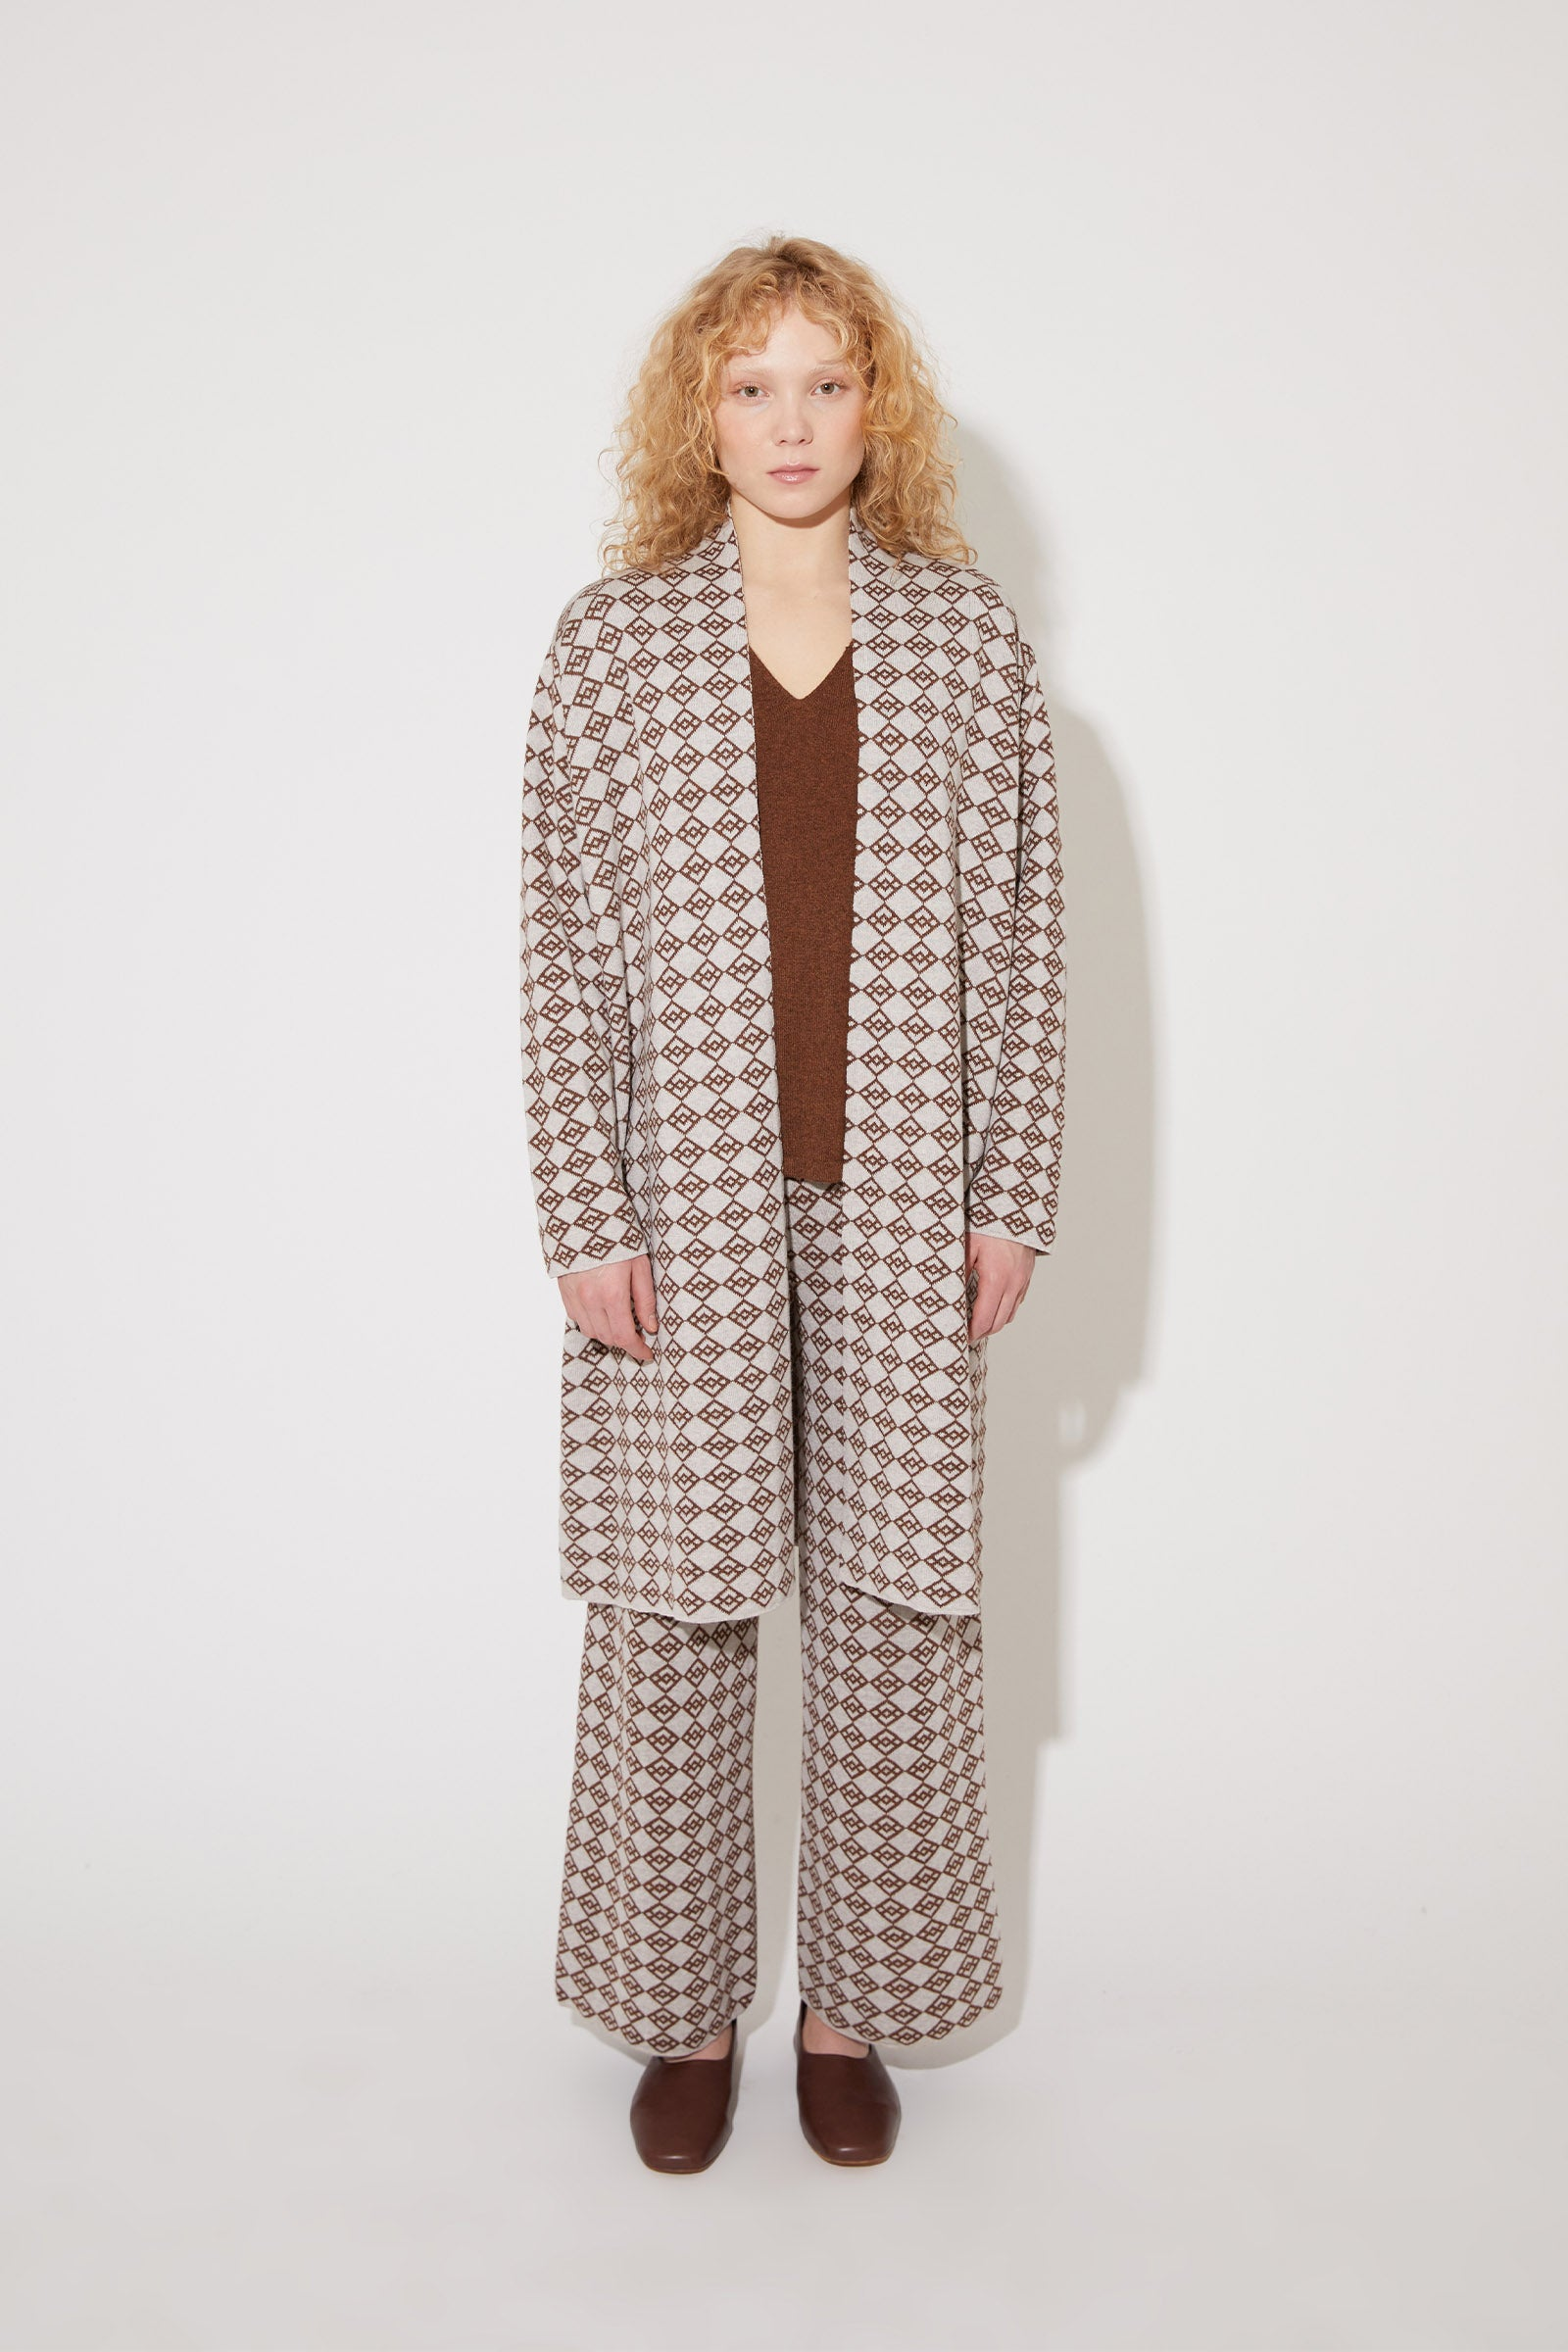 Avery merino symbol coat in brown-light beige